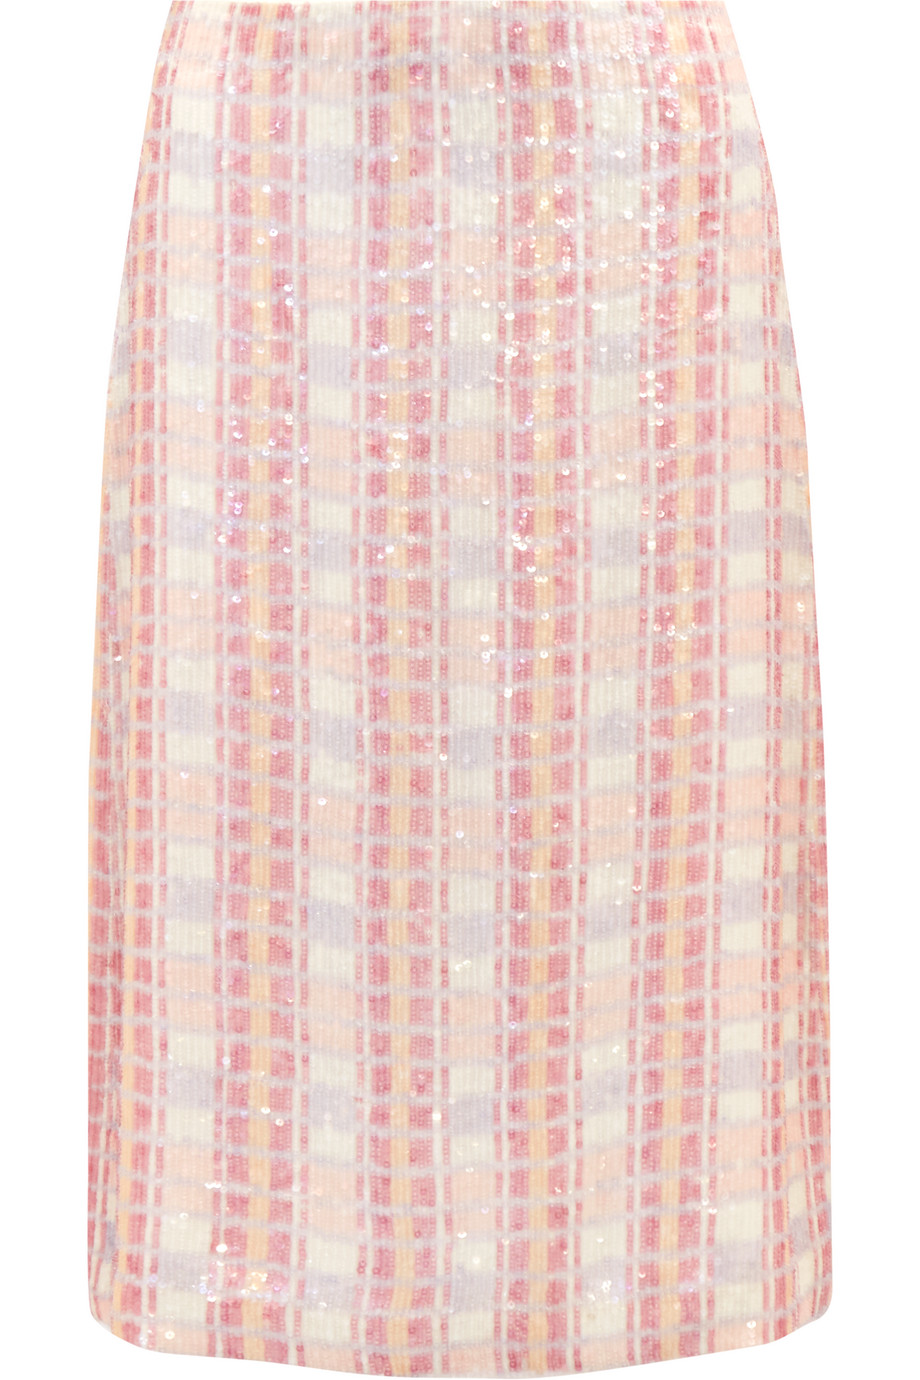 J.Crew Collection Sequined Silk-Georgette Midi Skirt, Size: 2